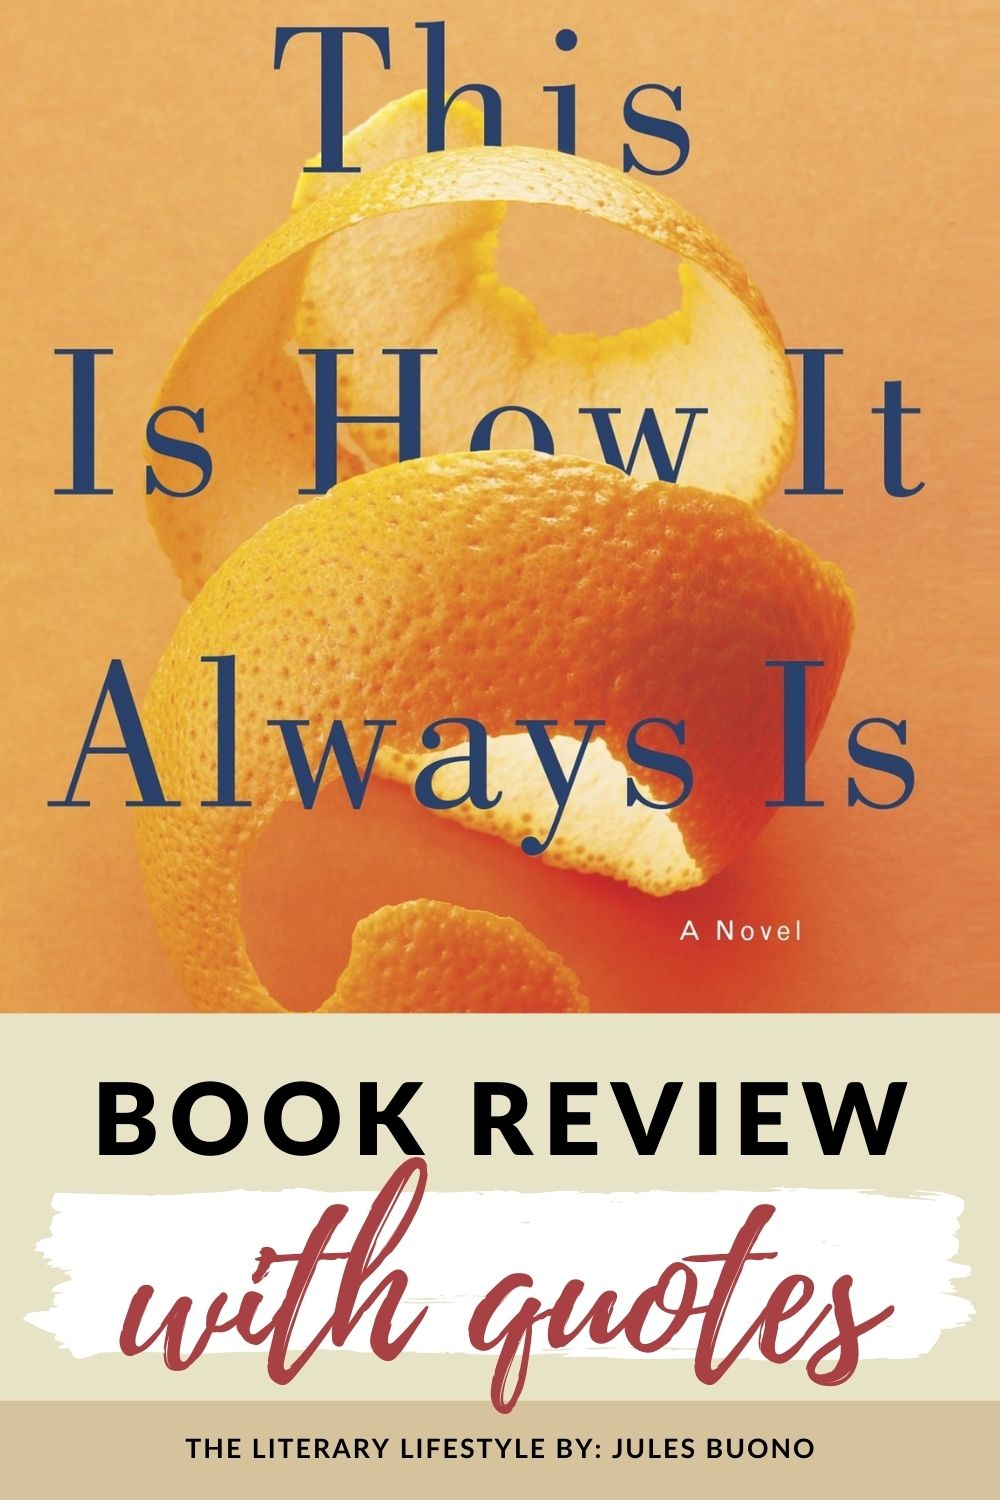 Review of This Is How It Always Is